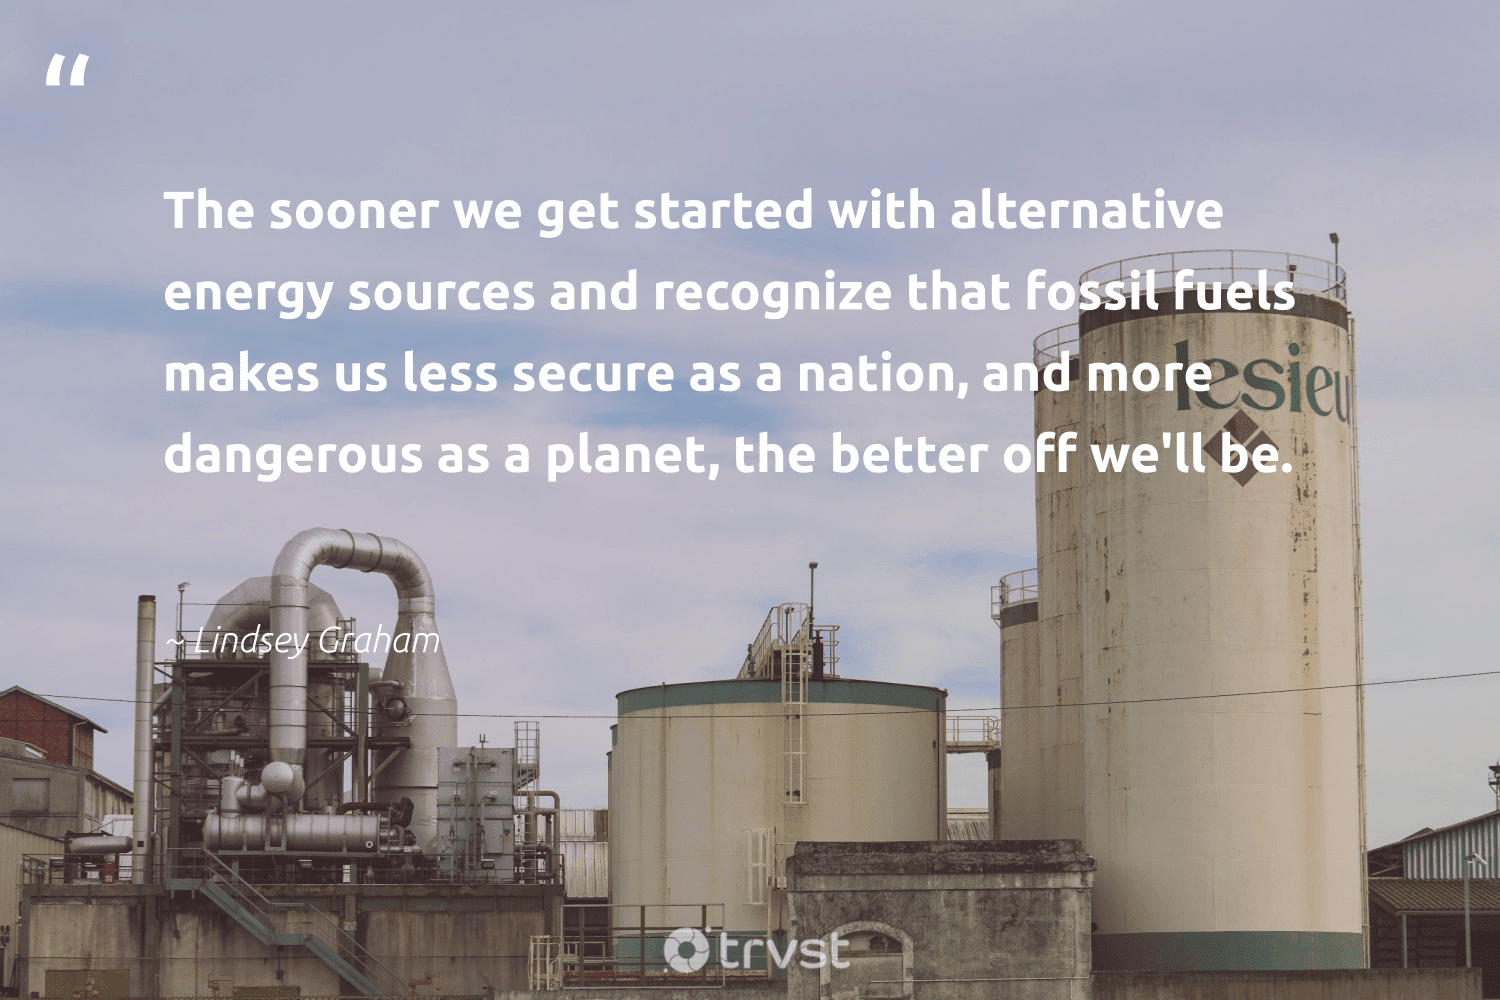 """""""The sooner we get started with alternative energy sources and recognize that fossil fuels makes us less secure as a nation, and more dangerous as a planet, the better off we'll be.""""  - Lindsey Graham #trvst #quotes #fossilfuels #energy #planet #fossil #oilspill #greenlife #environmental #dogood #gas #carbonfree"""